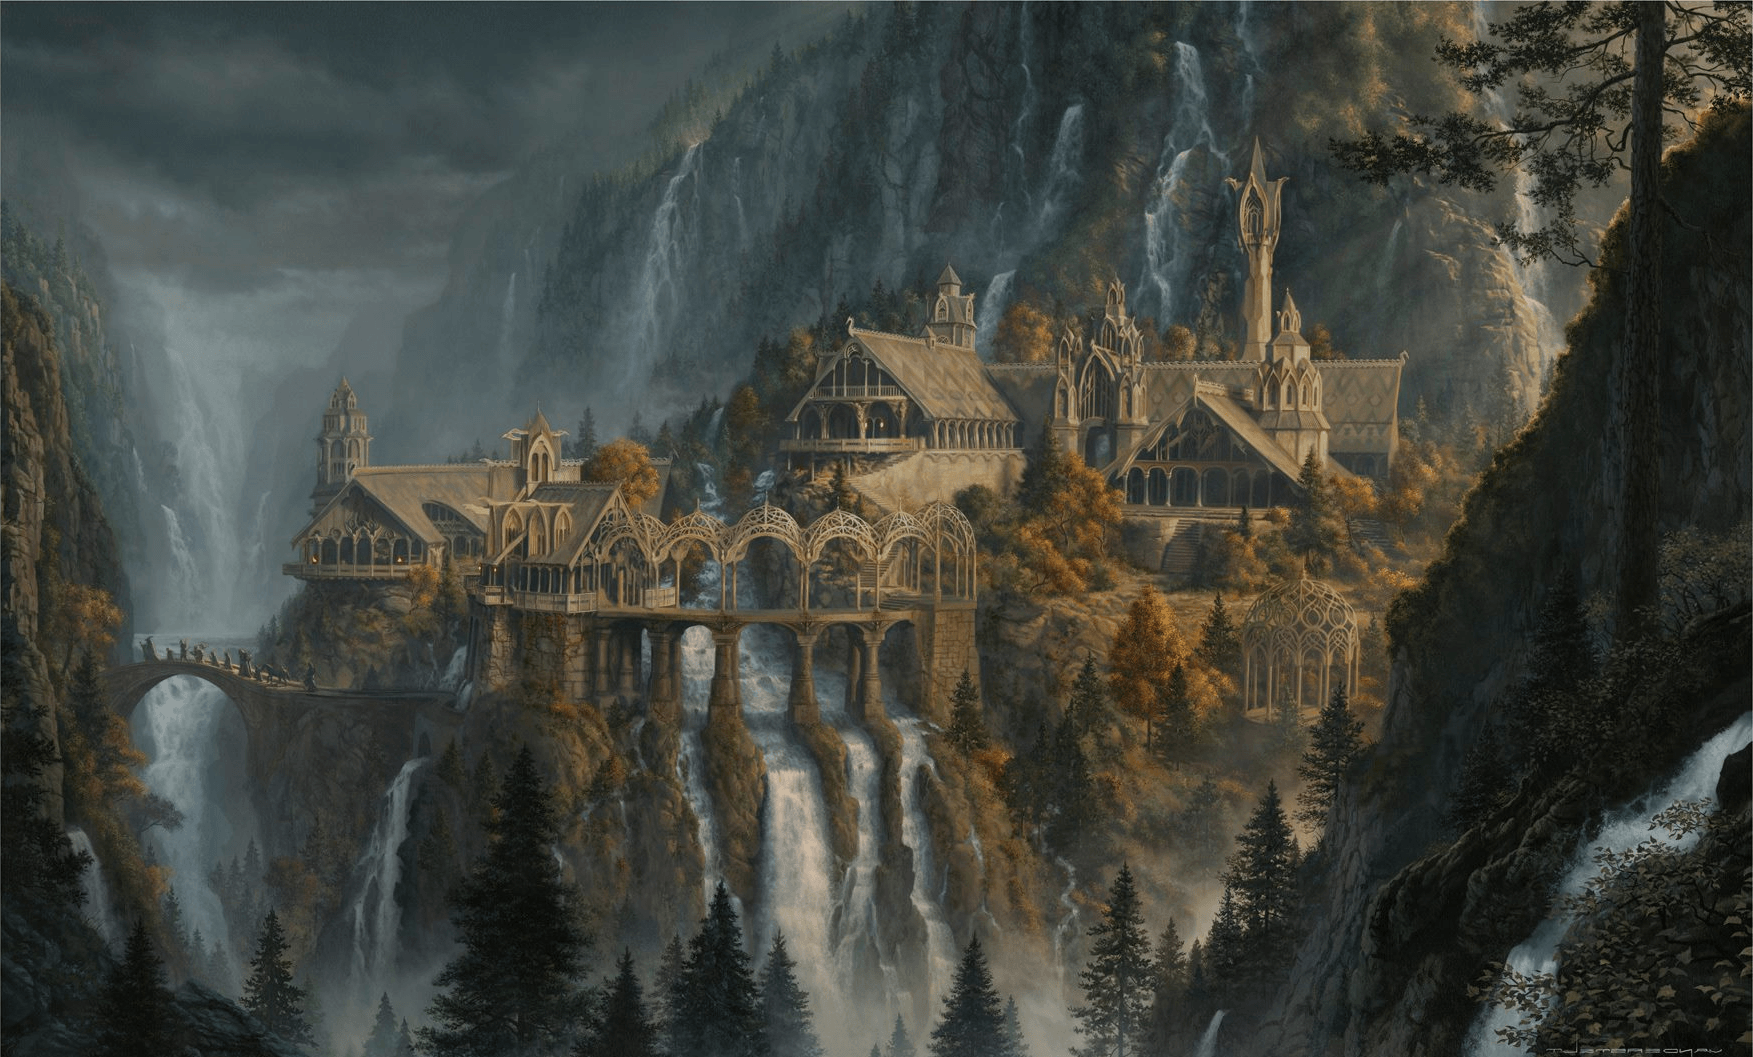 Lotr Rivendell Wallpapers - Top Free